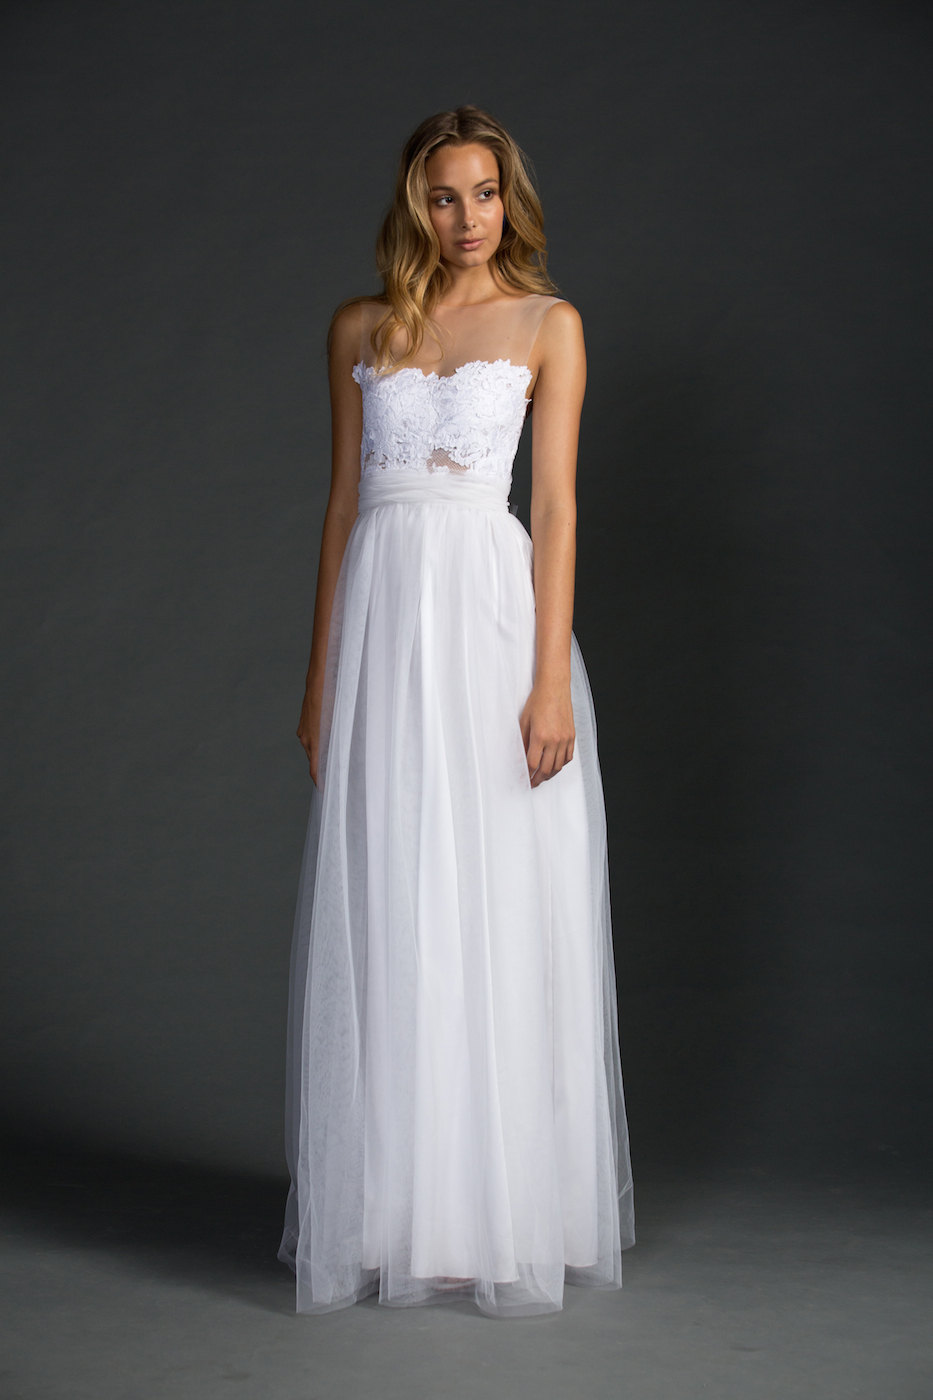 Dreamy Sheer Neckline Wedding Dress | via http://emmalinebride.com/bride/sheer-neckline-wedding-dress/ class=